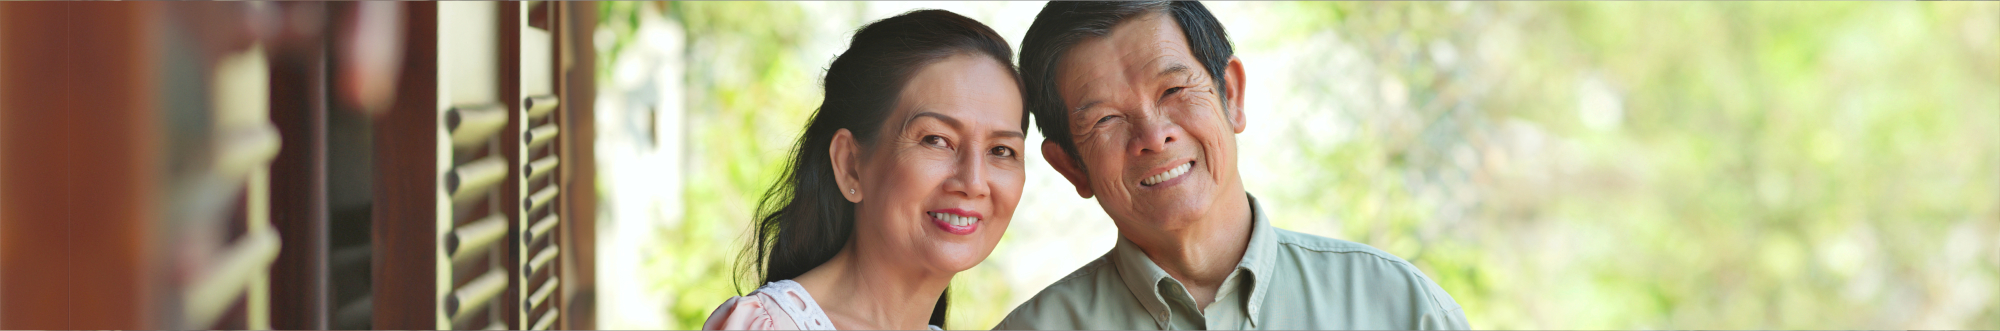 Portrait of Vietnamese retired couple smiling and looking at the camera